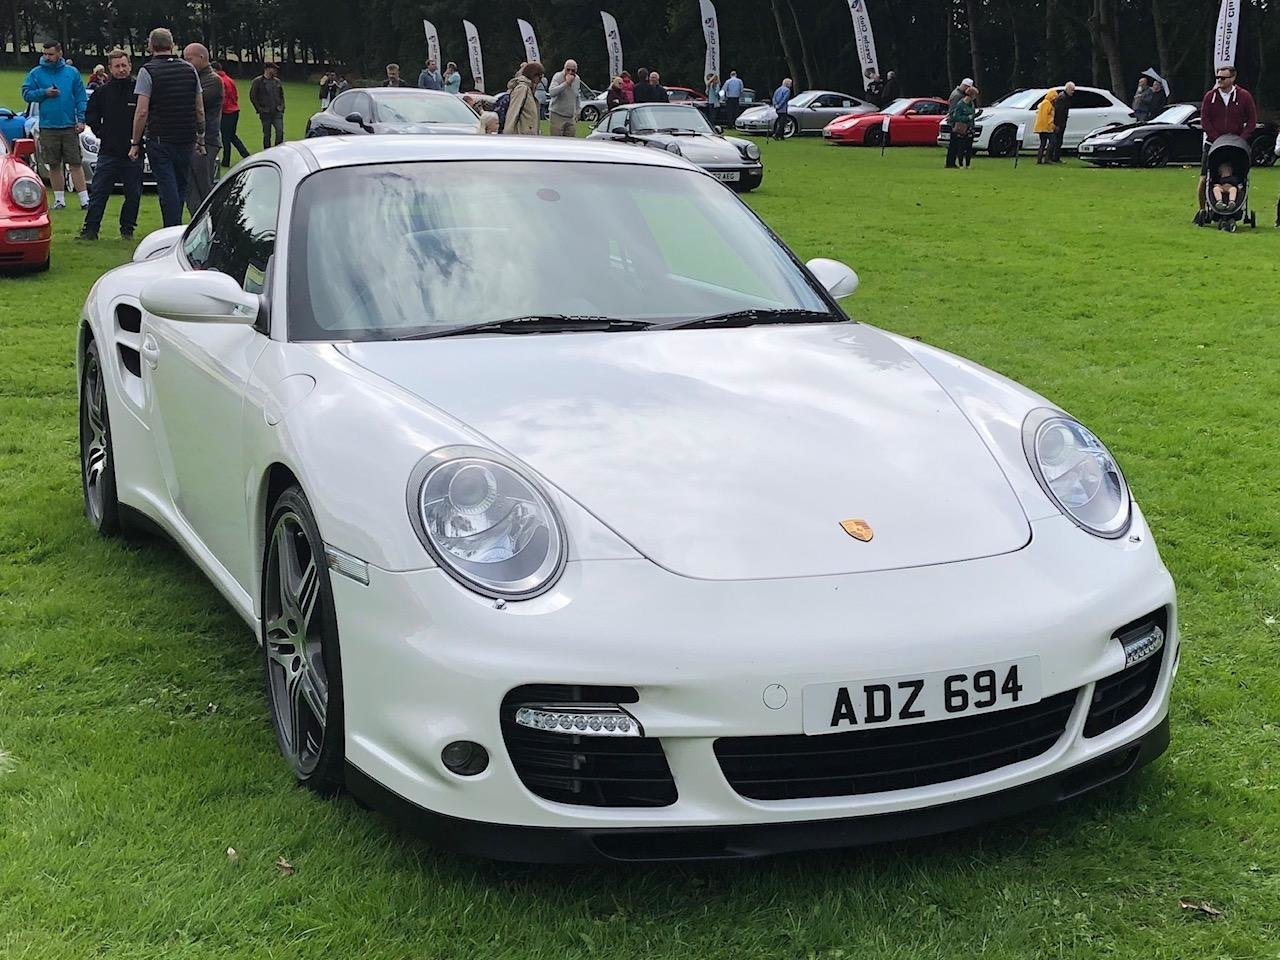 Picture of 2008 Porsche 911 997 3.6 Turbo Coupe Manual For Sale